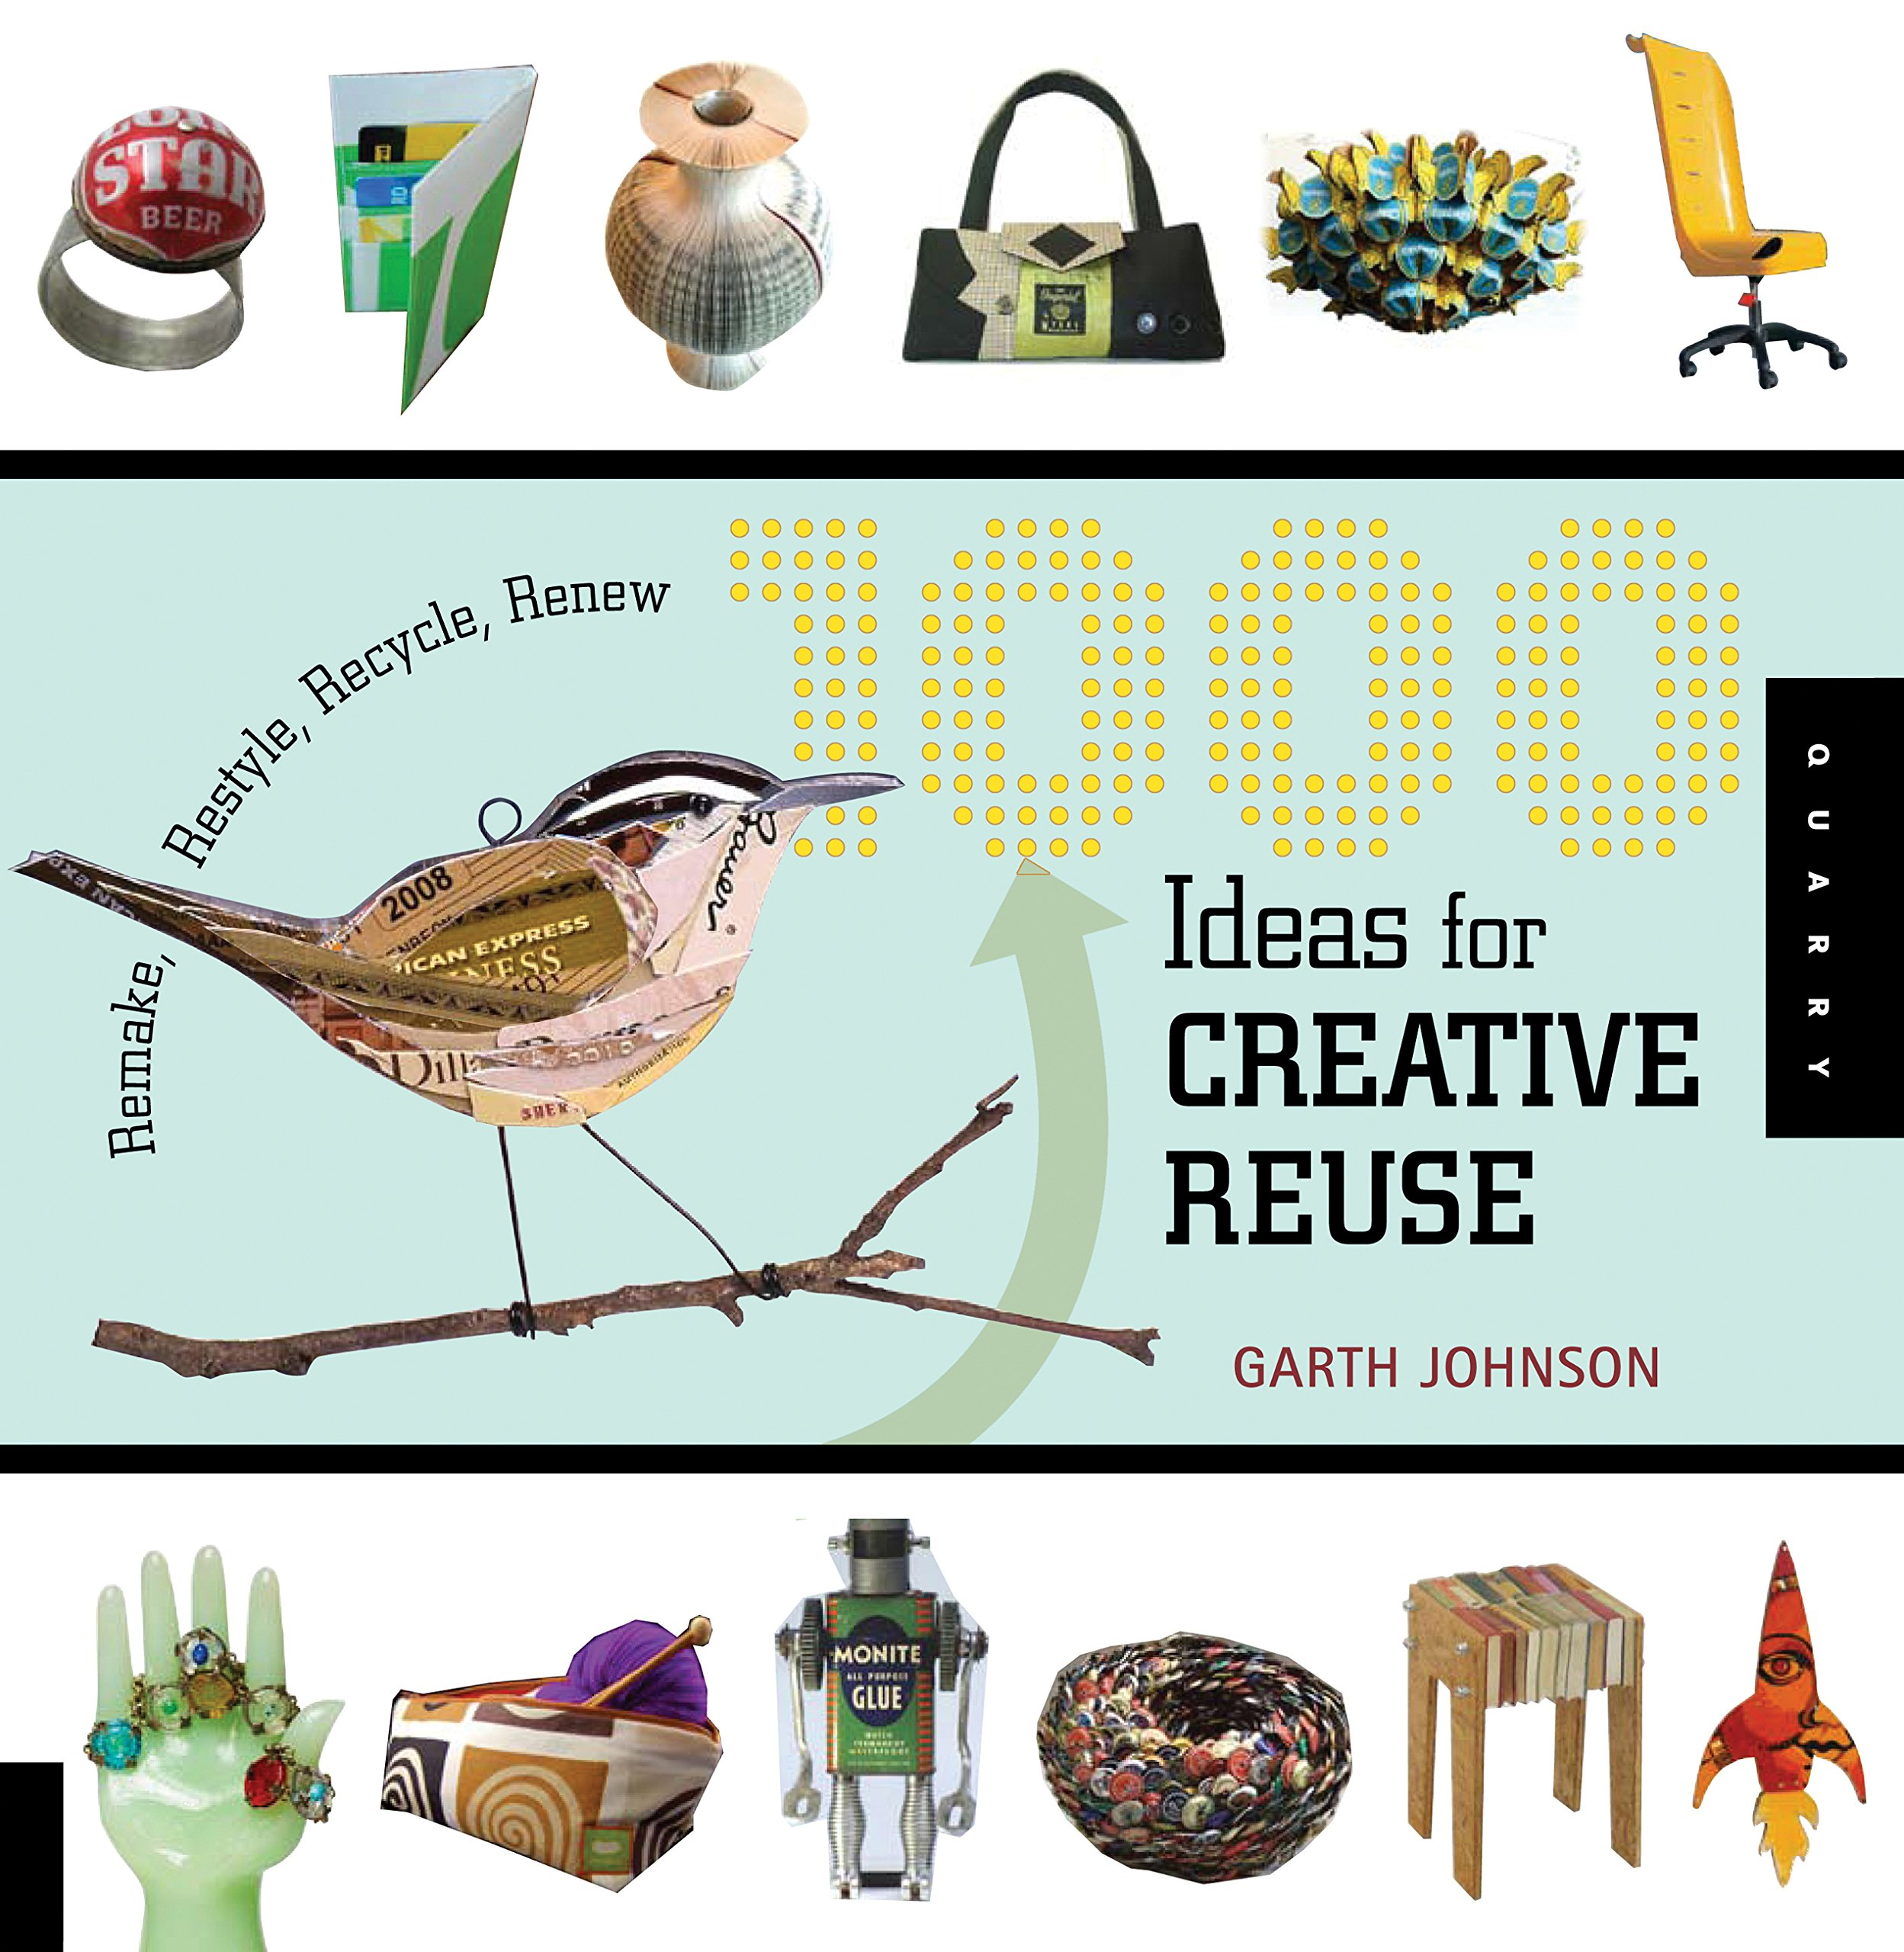 1000 Ideas for Creative Reuse: Remake, Restyle, Recycle, Renew (1000 Series):  Garth Johnson: 9781592535408: Amazon.com: Books